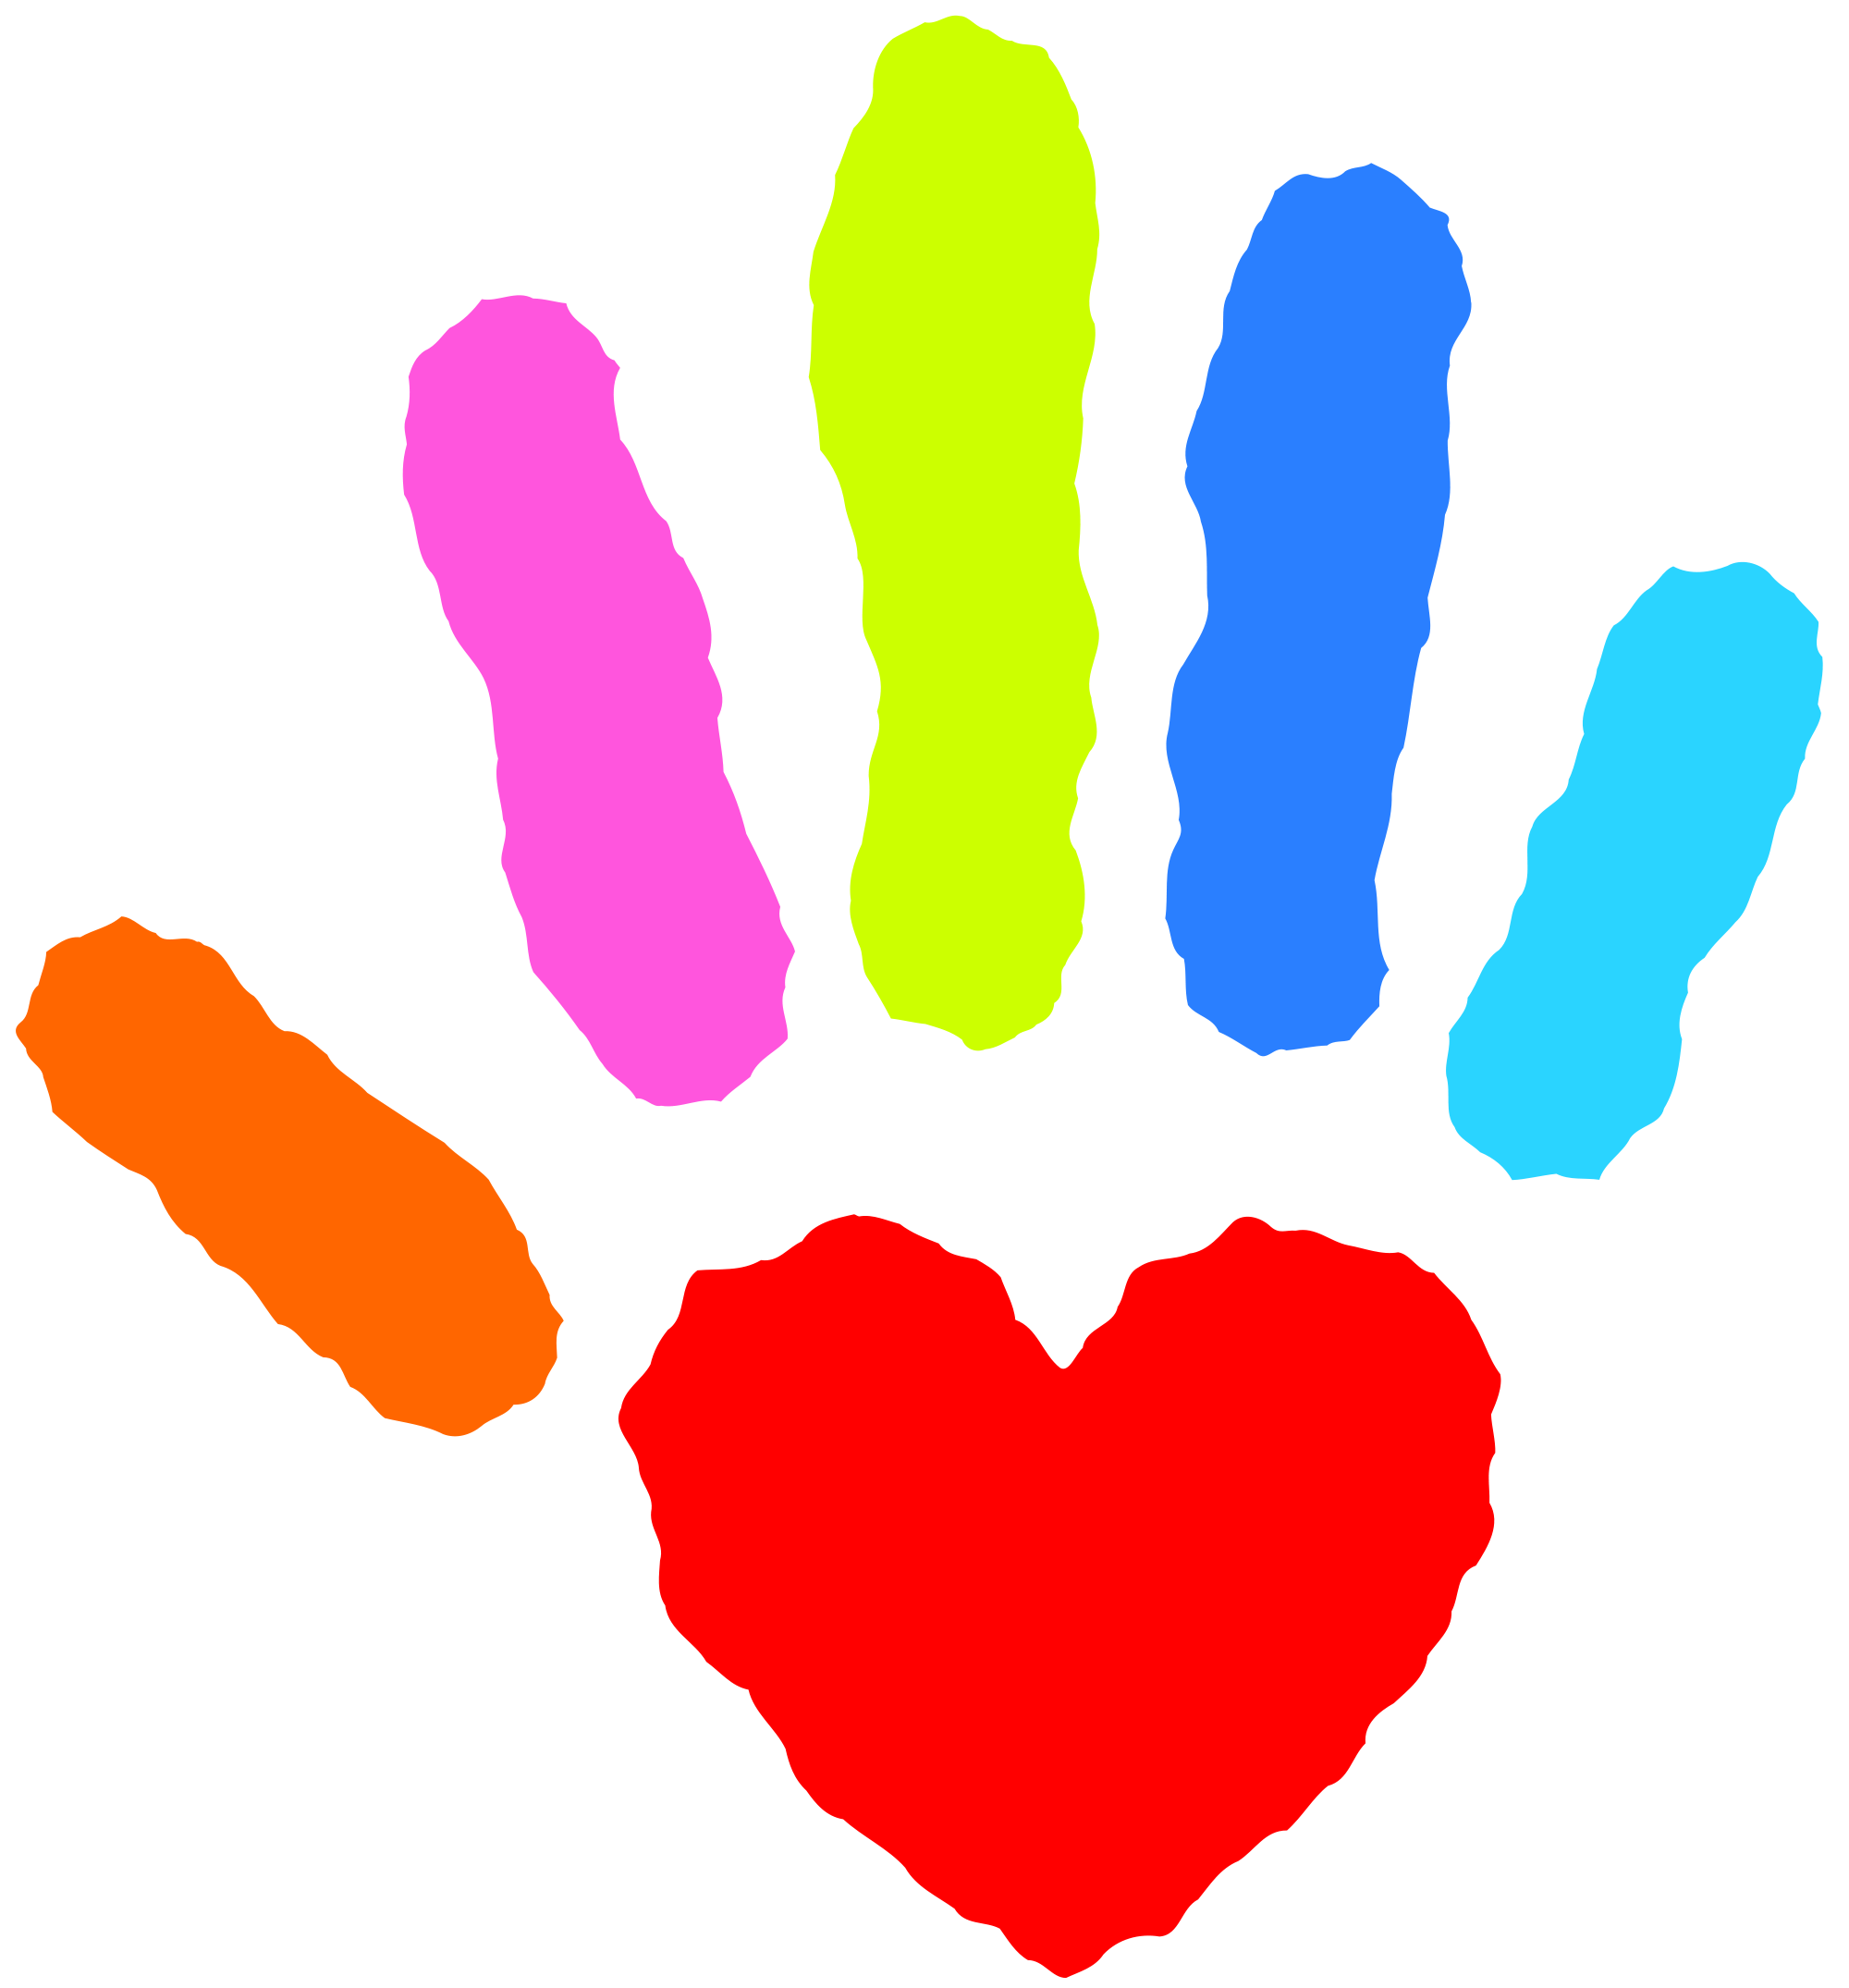 freeuse heart hands clipart #64515580